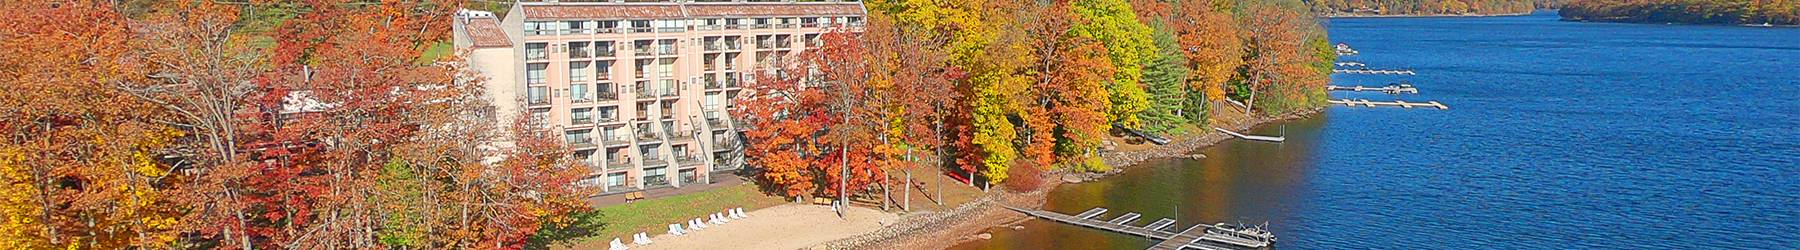 Fall Drone Shot of Will O' The Wisp